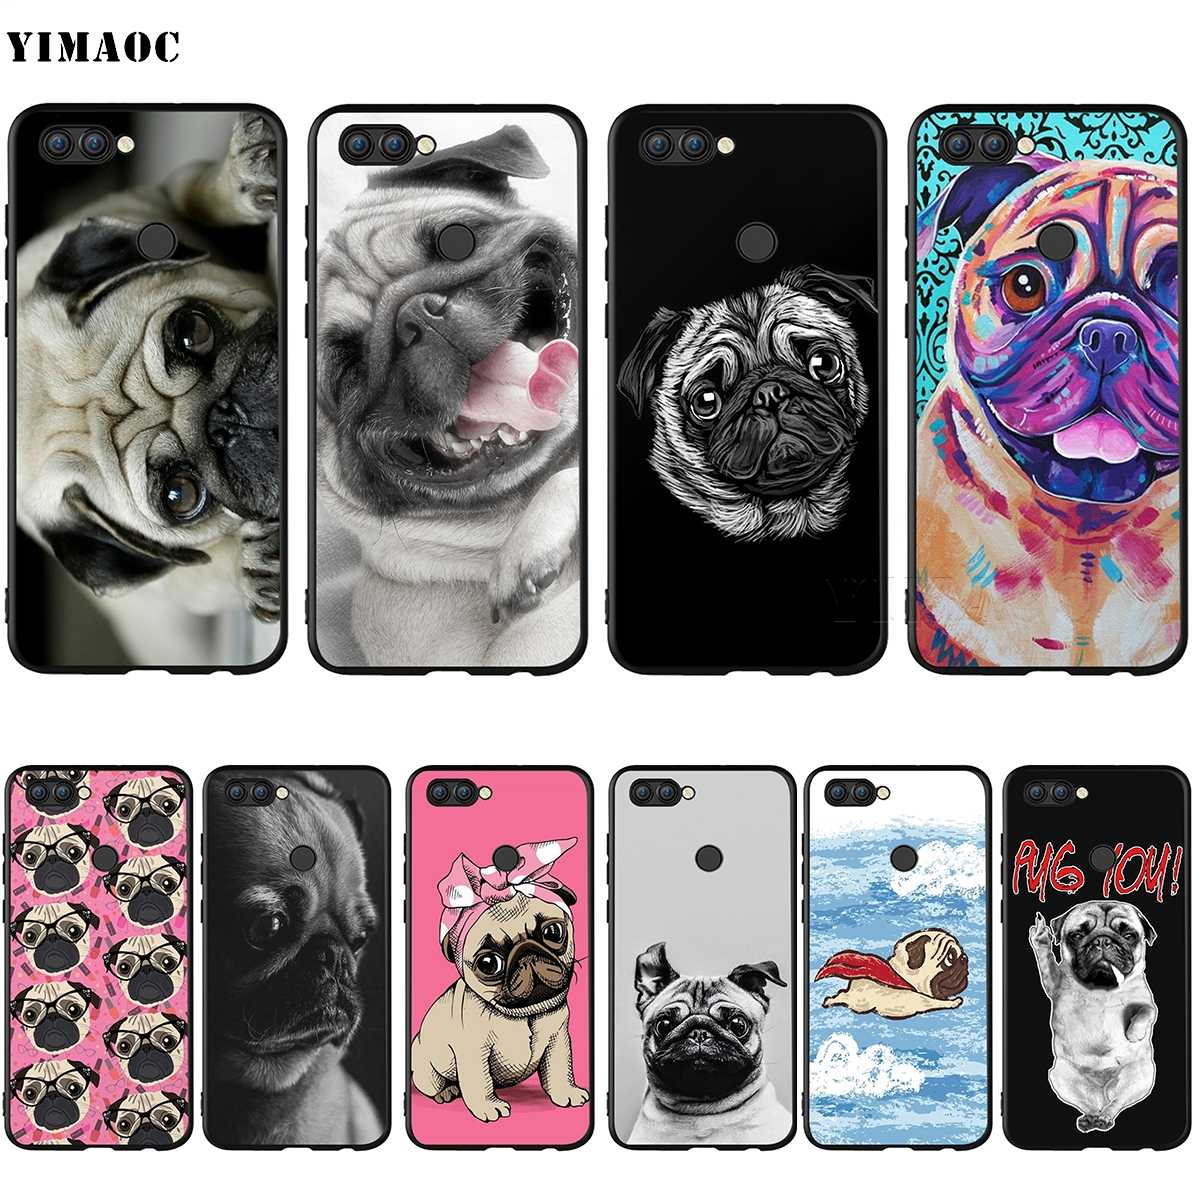 YIMAOC Cute Pug Dog Silicone Case for Huawei Honor 6a 7a 7c 7x 8 9 10 Lite Pro Y6 Prime 2018 2017